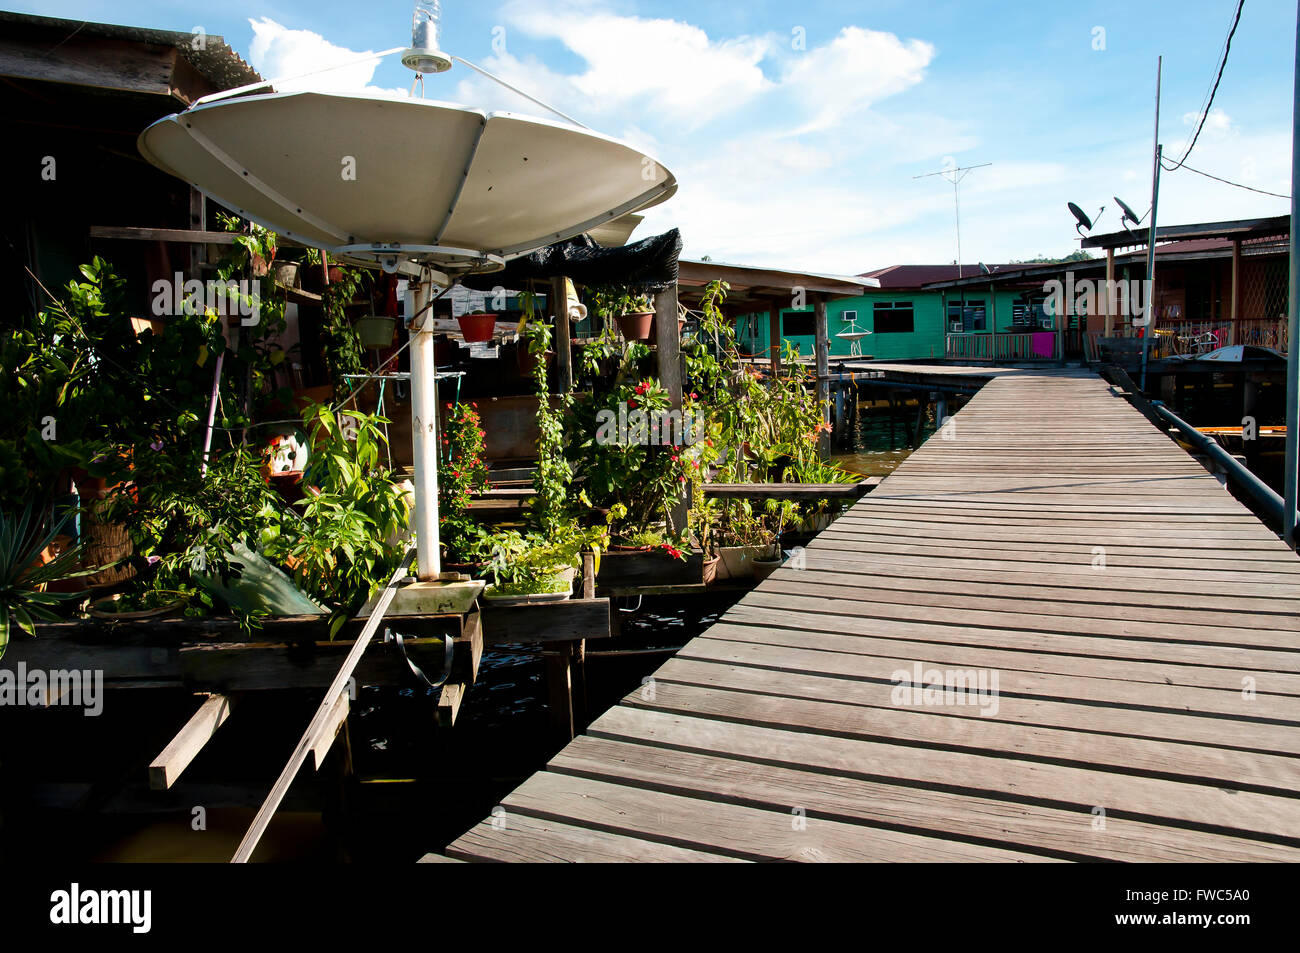 Water Village - Bandar Seri Begawan - Brunei - Stock Image